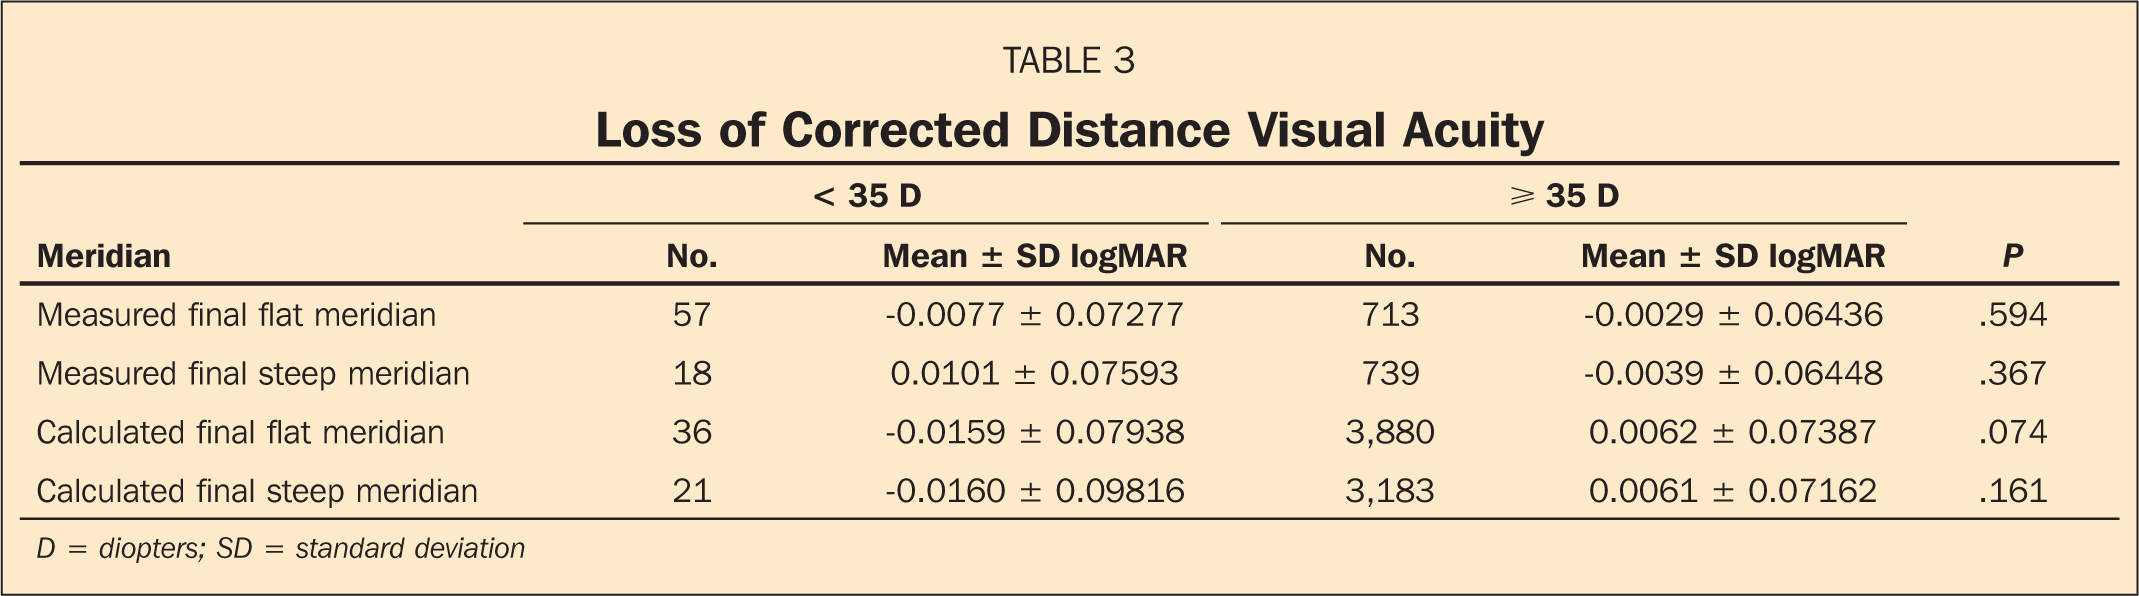 Loss of Corrected Distance Visual Acuity